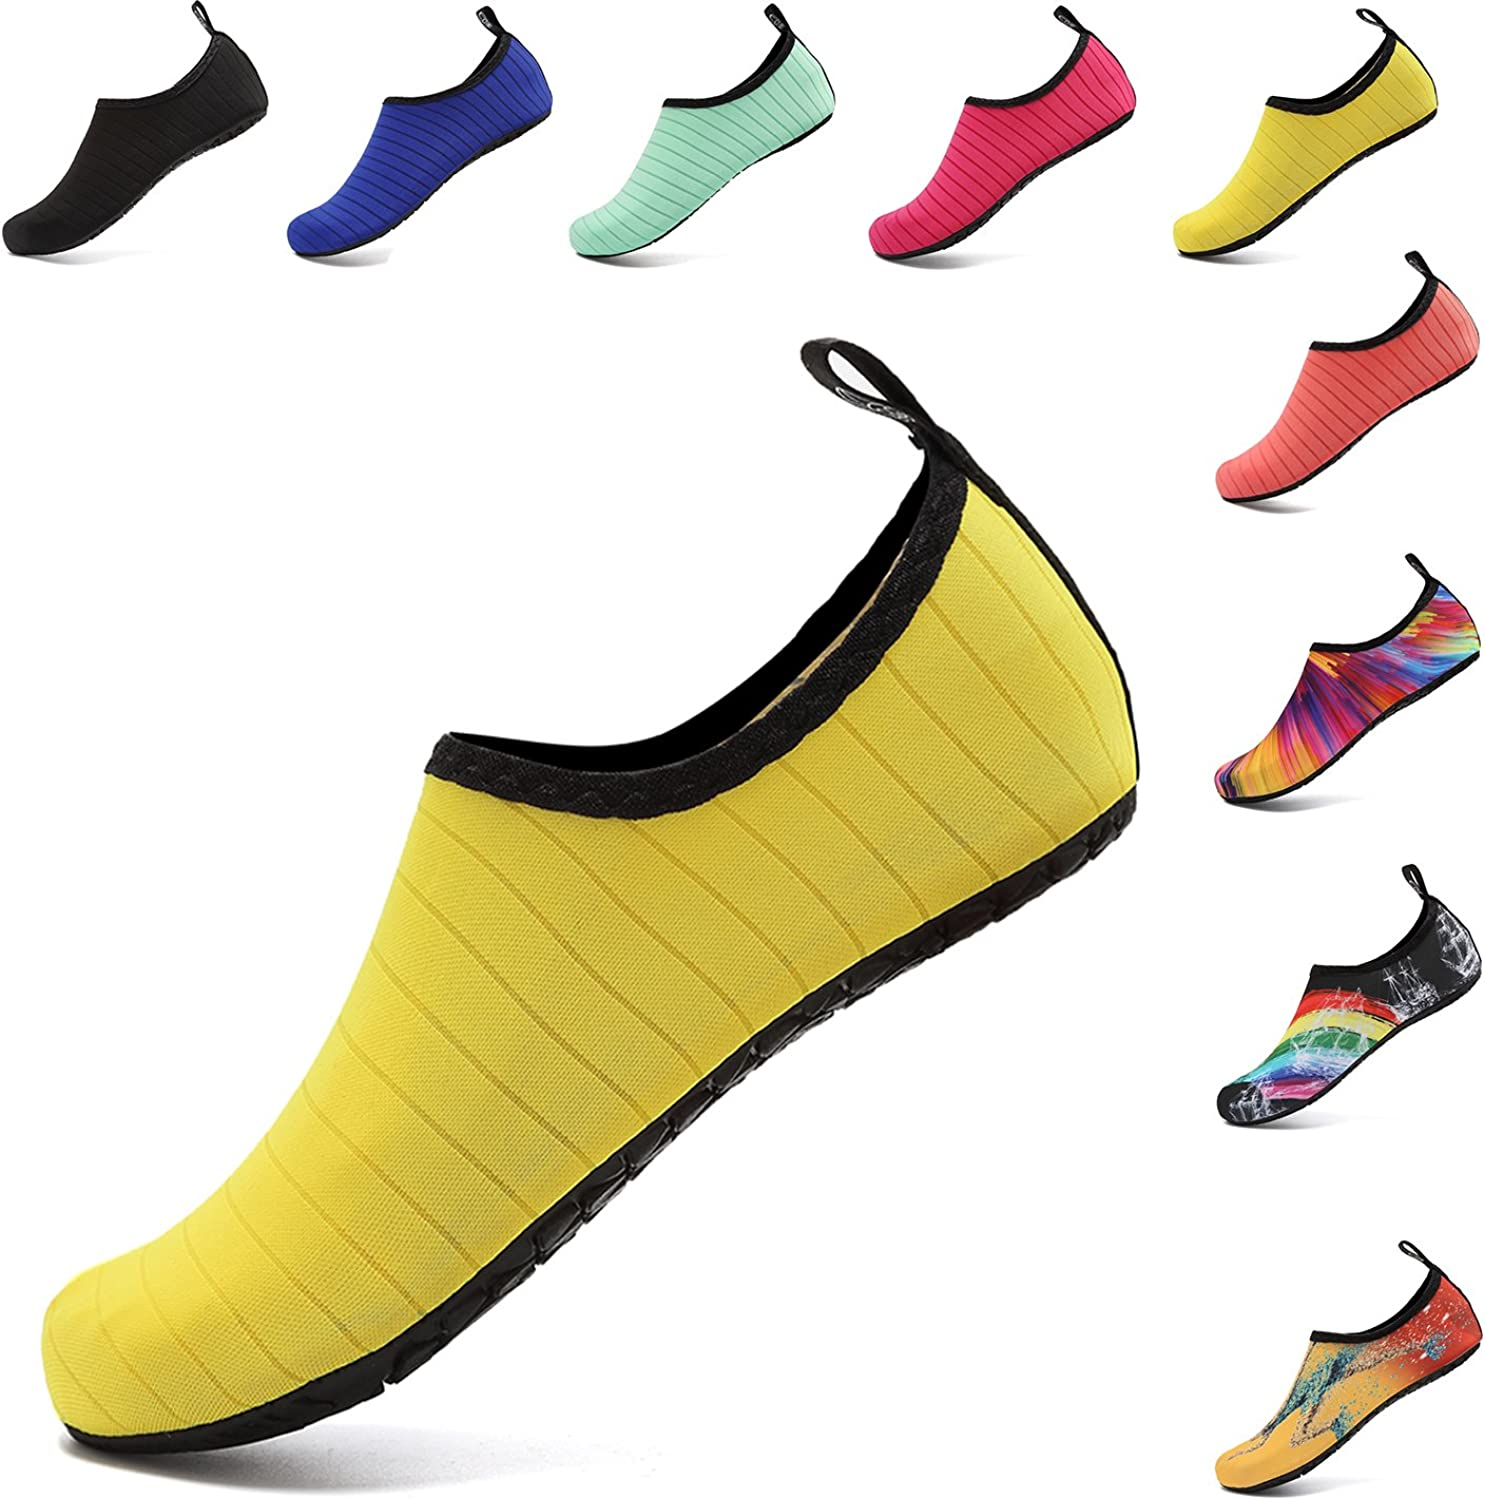 WAWEN Water Sports shoes Barefoot Quick-Dry Aqua Beach Swim Exercise Yoga Socks Slip-on for Mens and Womens